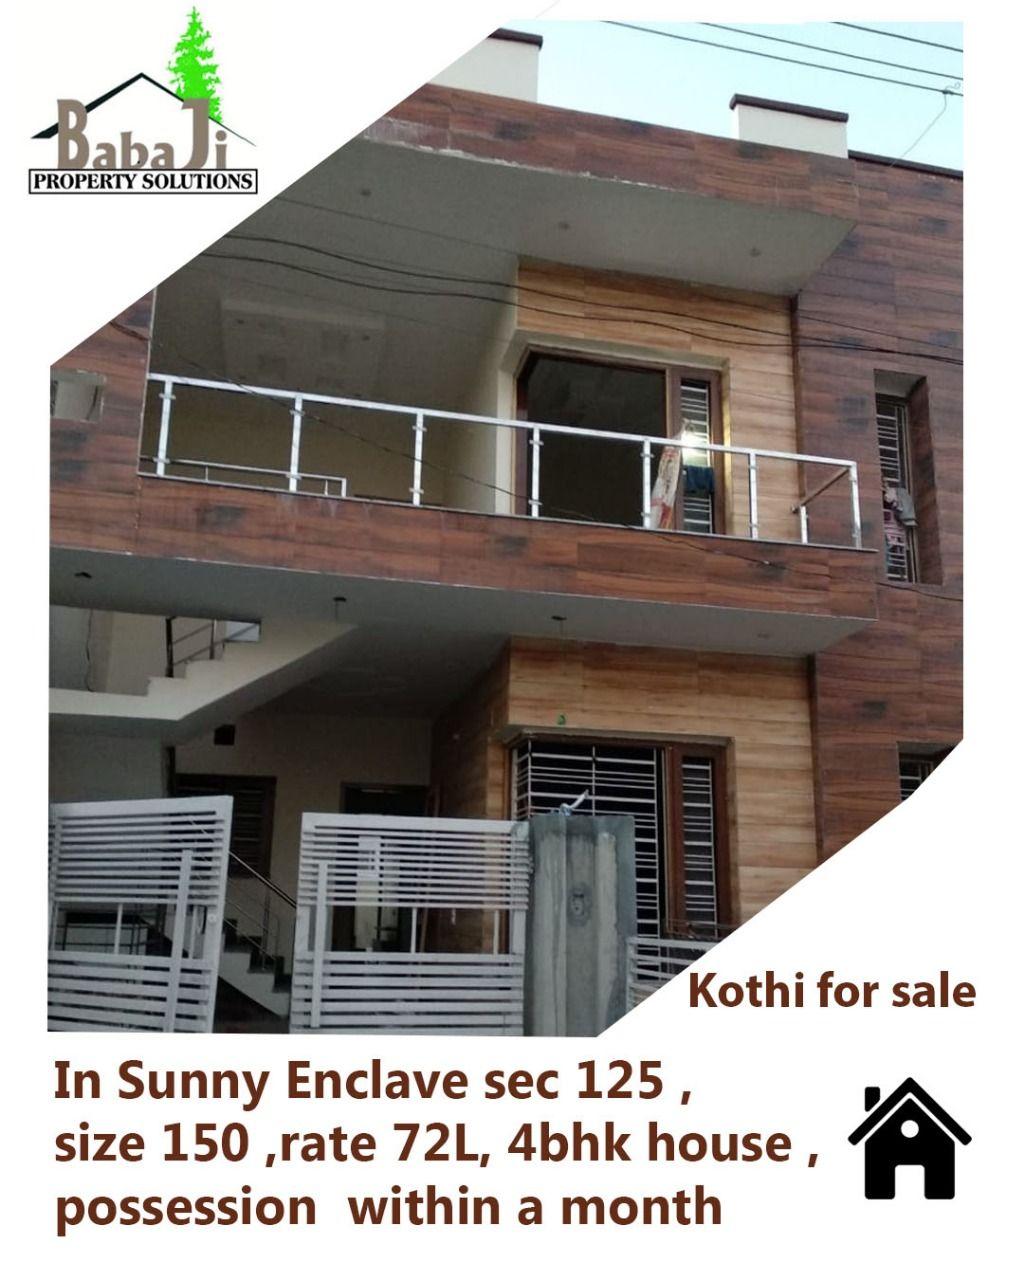 Kothi For Sale In Sunny Enclave Sector 125 Size 150 Sq Yd 4bhk